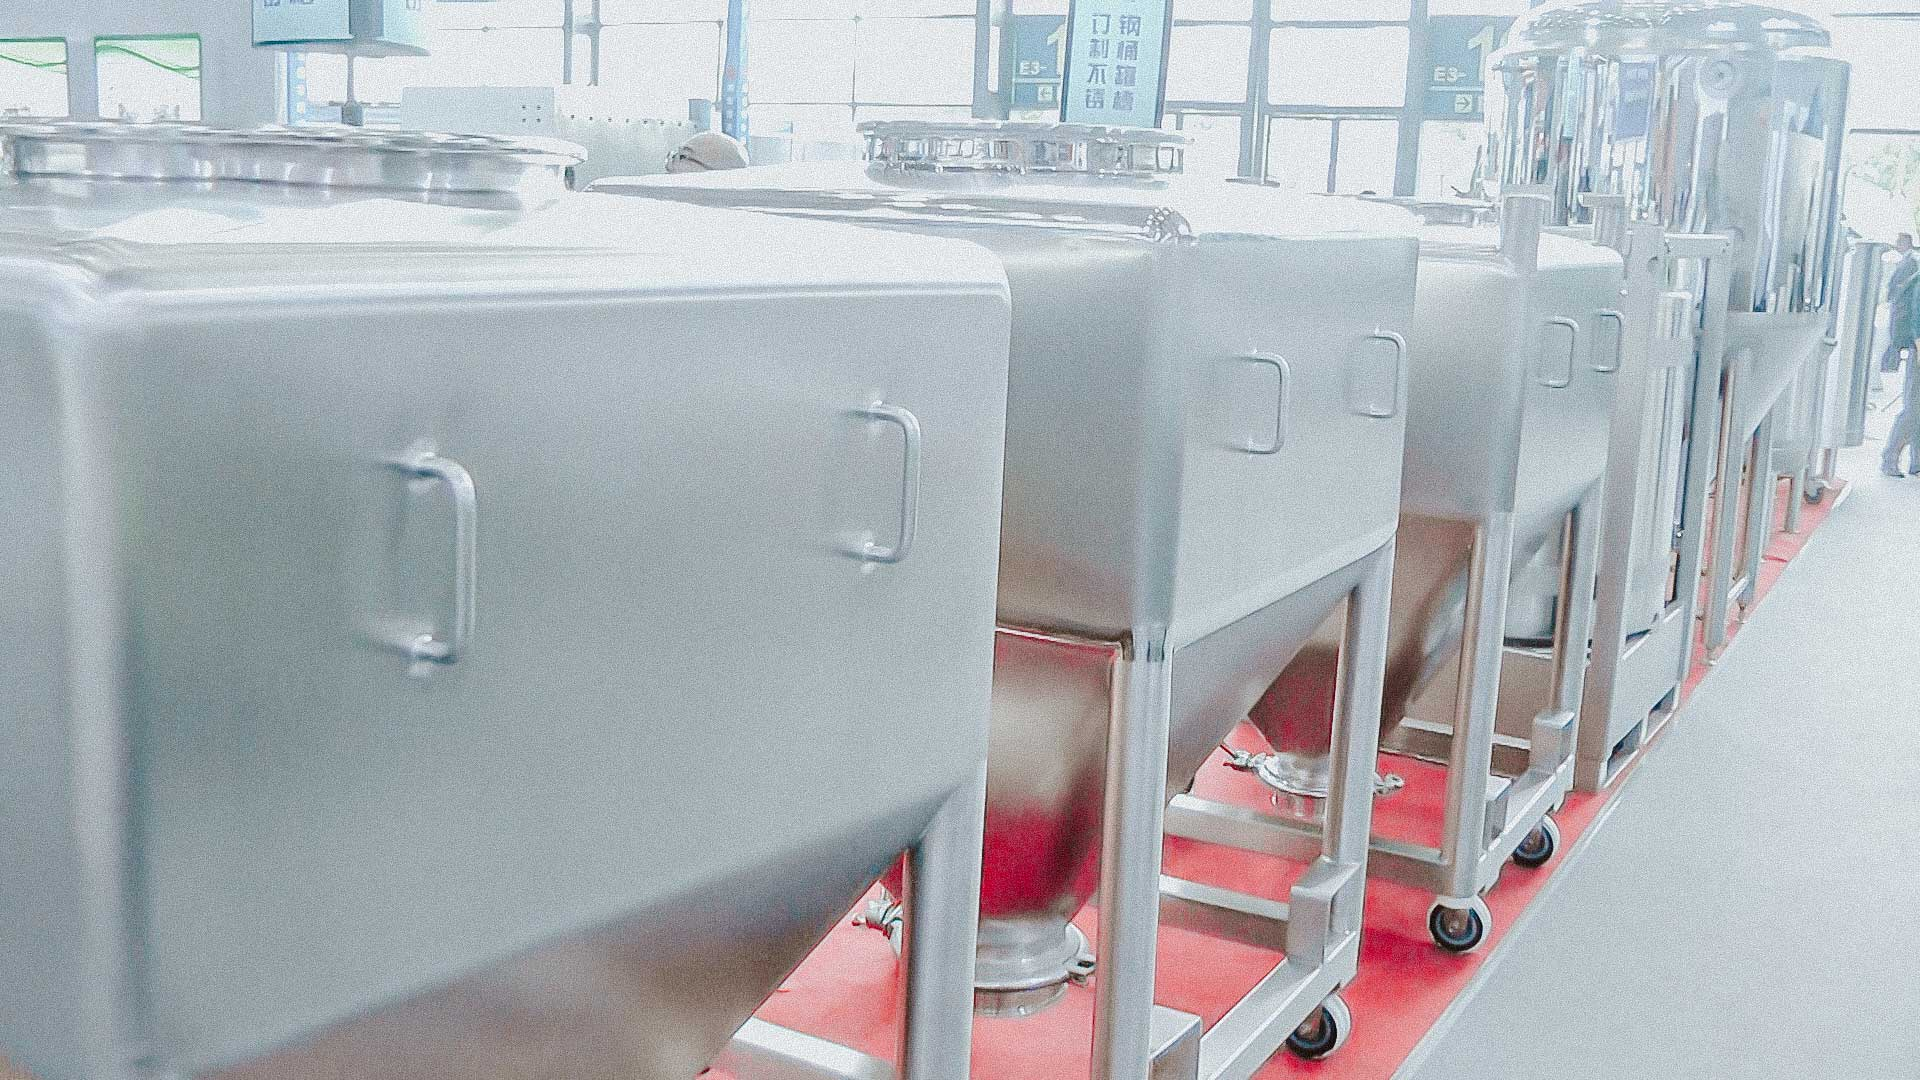 Stainless steel tanks for storage and preparation of liquid medicines